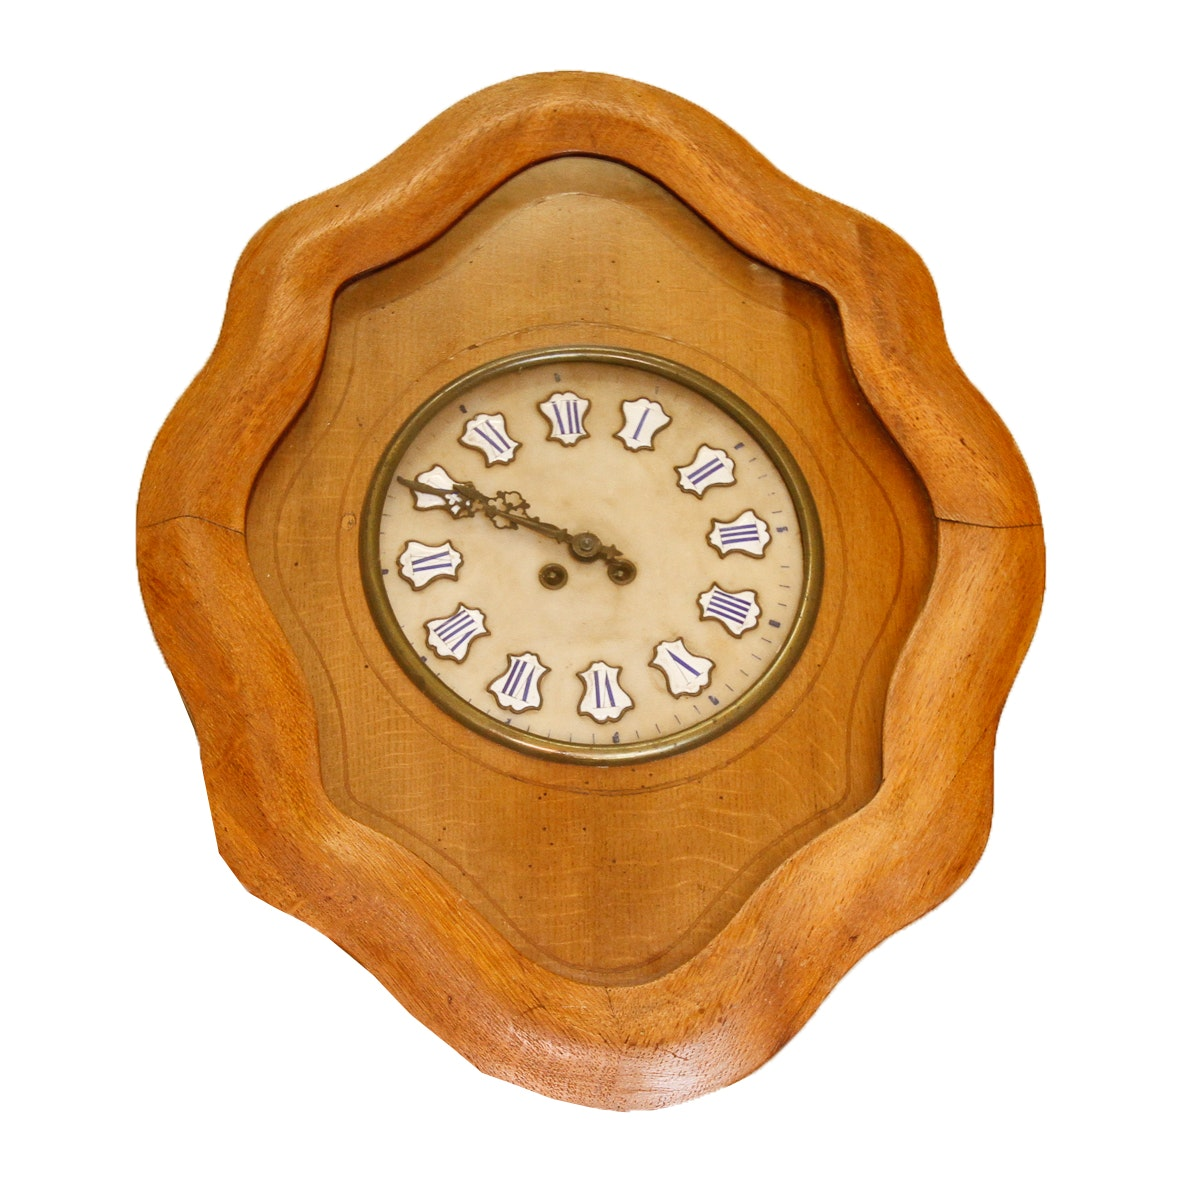 Antiqued Wall Clock with Hand Painted Enamel Accents